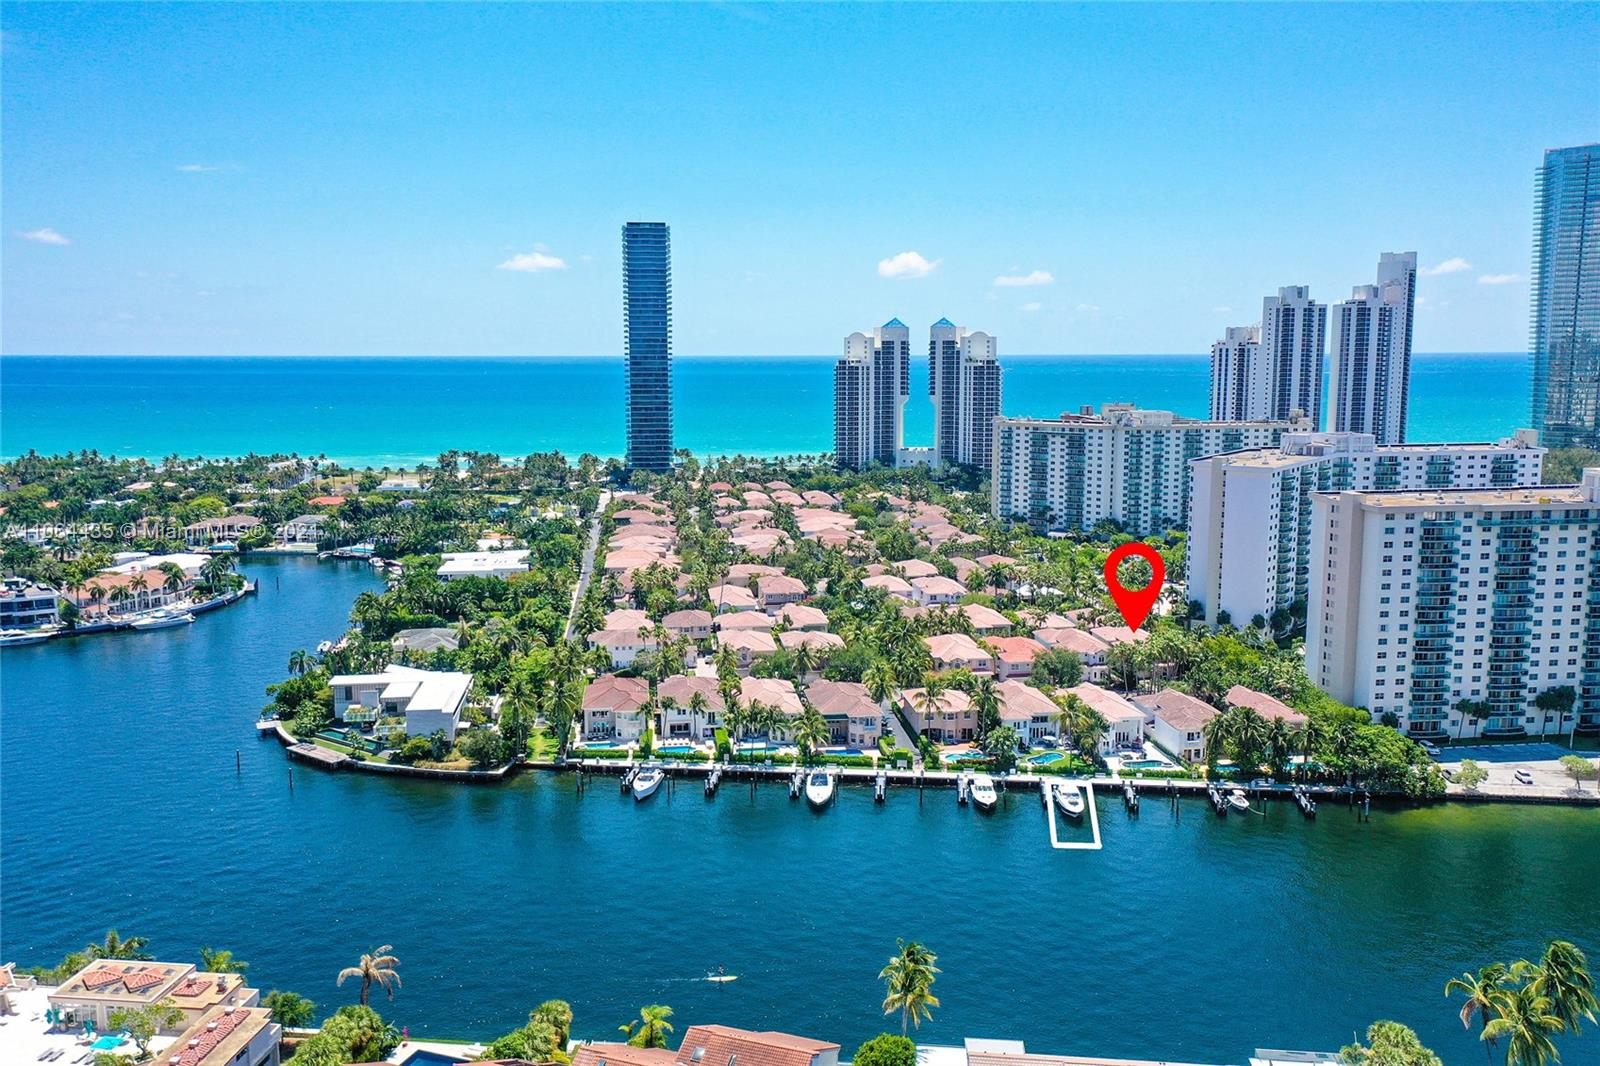 Prime location + a spectacular home including a deep water PRIVATE BOAT DOCK, walking distance to the beach = an amazing lifestyle opportunity!! Welcome to this fabulous, unique two story courtyard home with a private marina, located in prestigious Golden Gate Estates and Marina, the only gated & 24 hours guarded waterfront single family homes community in Sunny Isles Beach. This fantastic Estate just shy of 3500 SF of LA seats on a 7172 SF desirable cul-de-sac corner lot, featuring a luxury size full sunny pool & beautifully manicured outdoor area/double height ceilings/5bed/4.5bath/formal dining & living/family room/open kitchen/den-office space/2 car garage/elegant finishes such as marble floors, designer custom work throughout/lots of natural light and privacy.